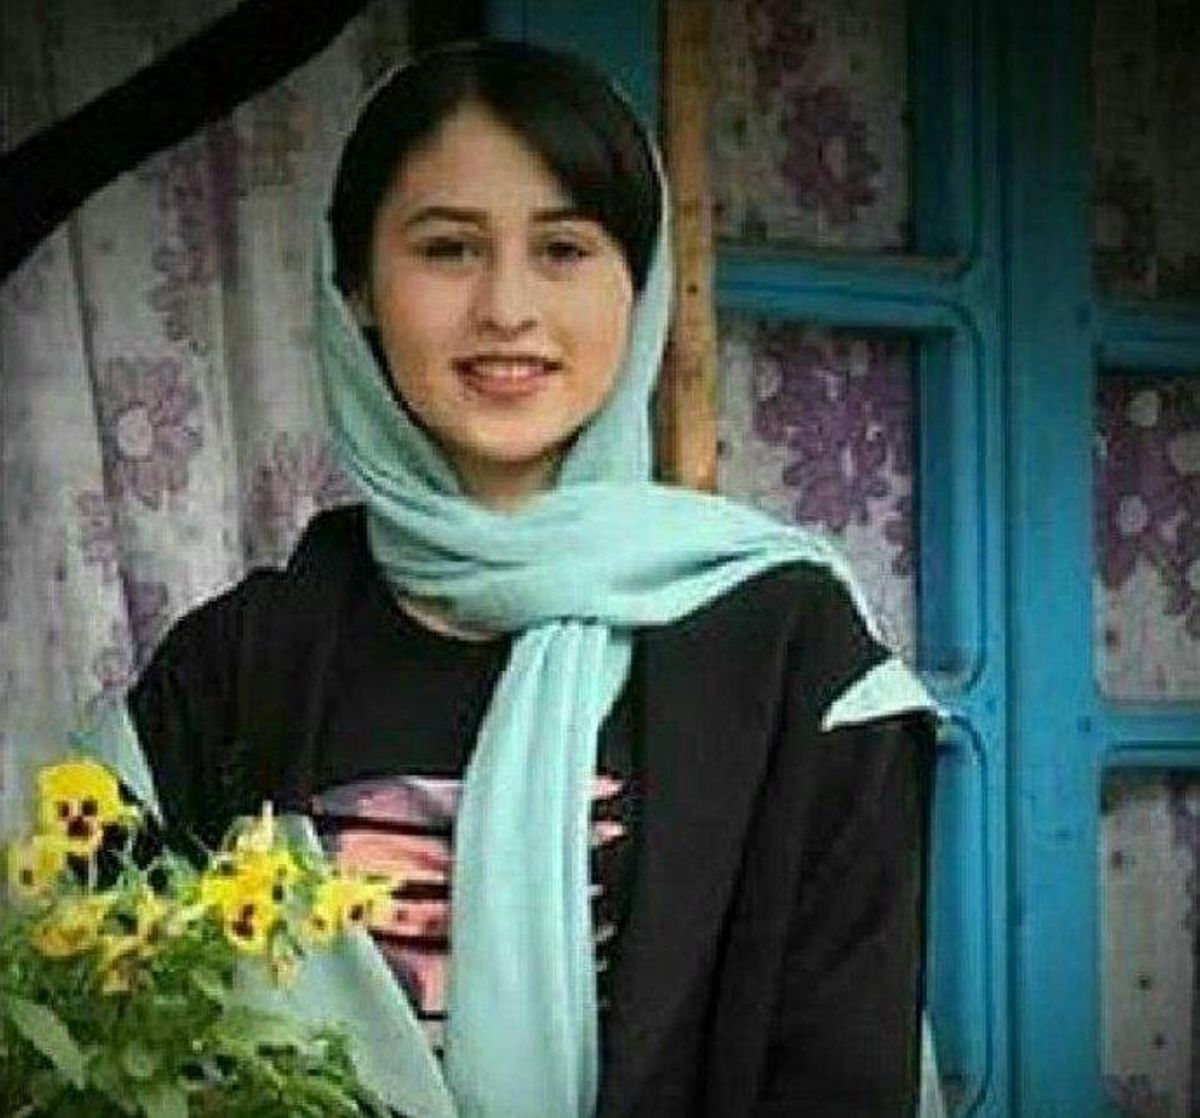 Daddy's 14-year-old daughter protests after thehonor killing in Iran